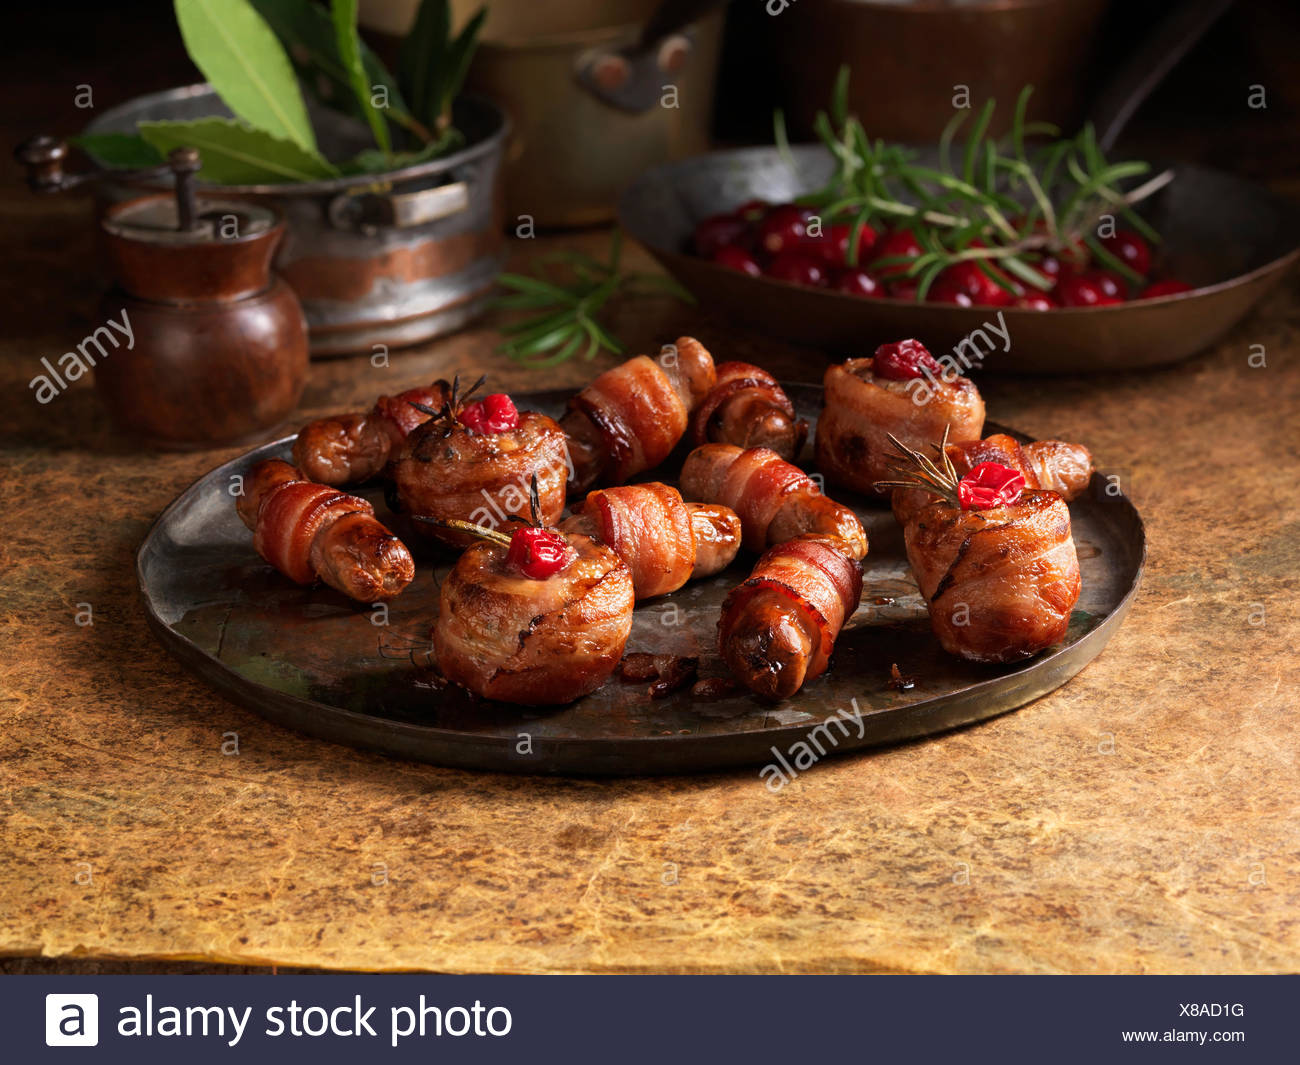 Christmas, celebration food, garnish selection, pigs in blankets, cranberries, rosemary - Stock Image